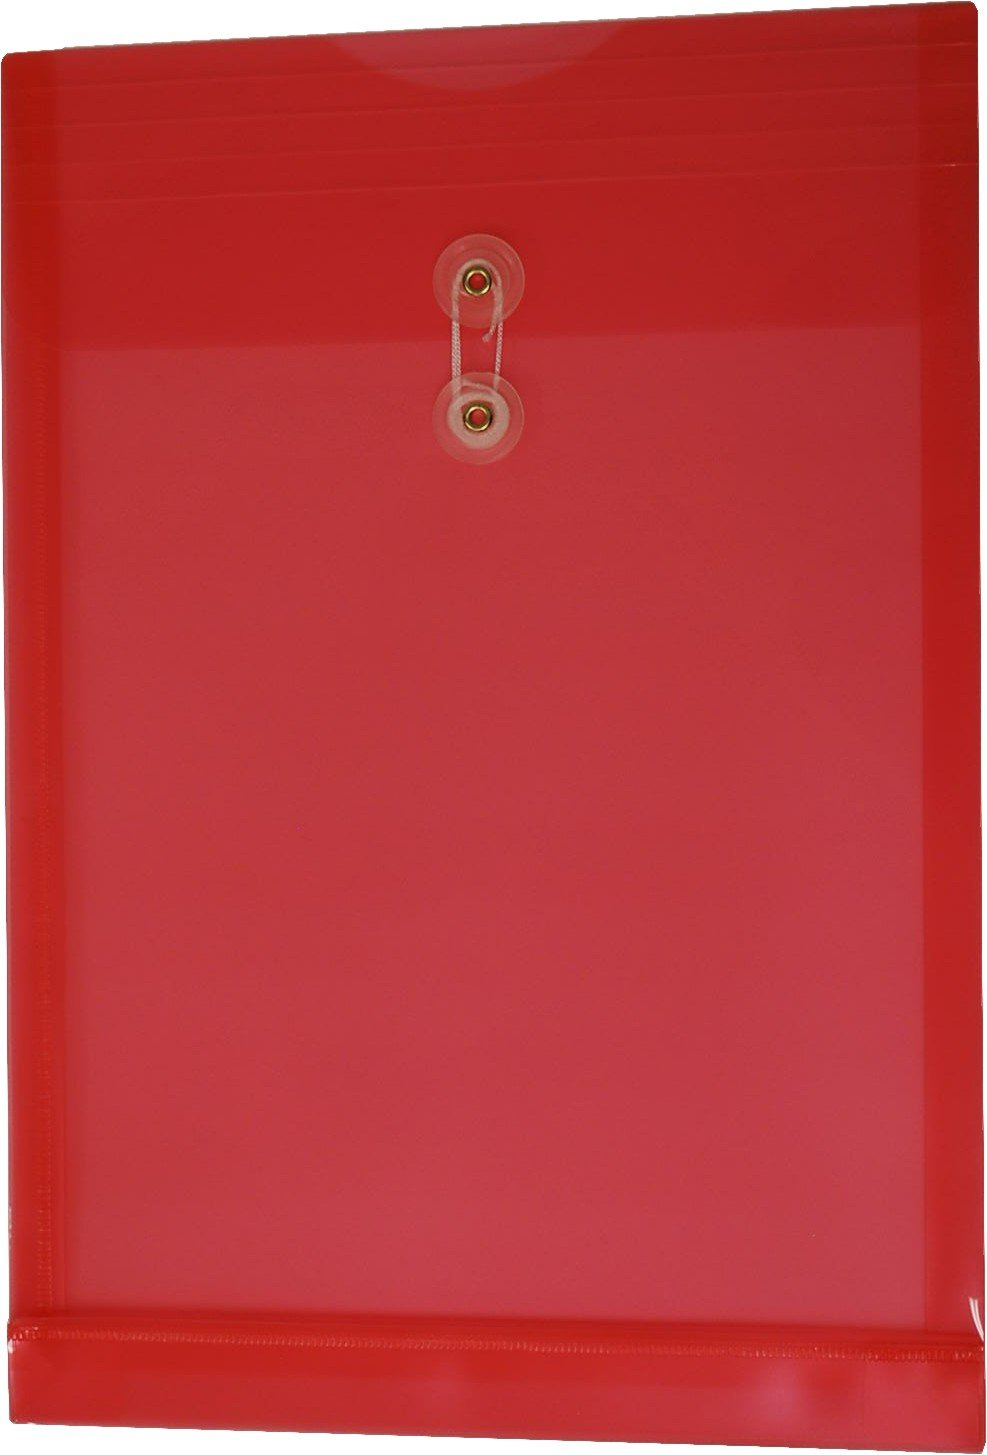 Filexec Poly envelope, Legal size, Top load, Button string closure,Red, (Pack of 6) (50055-14102)